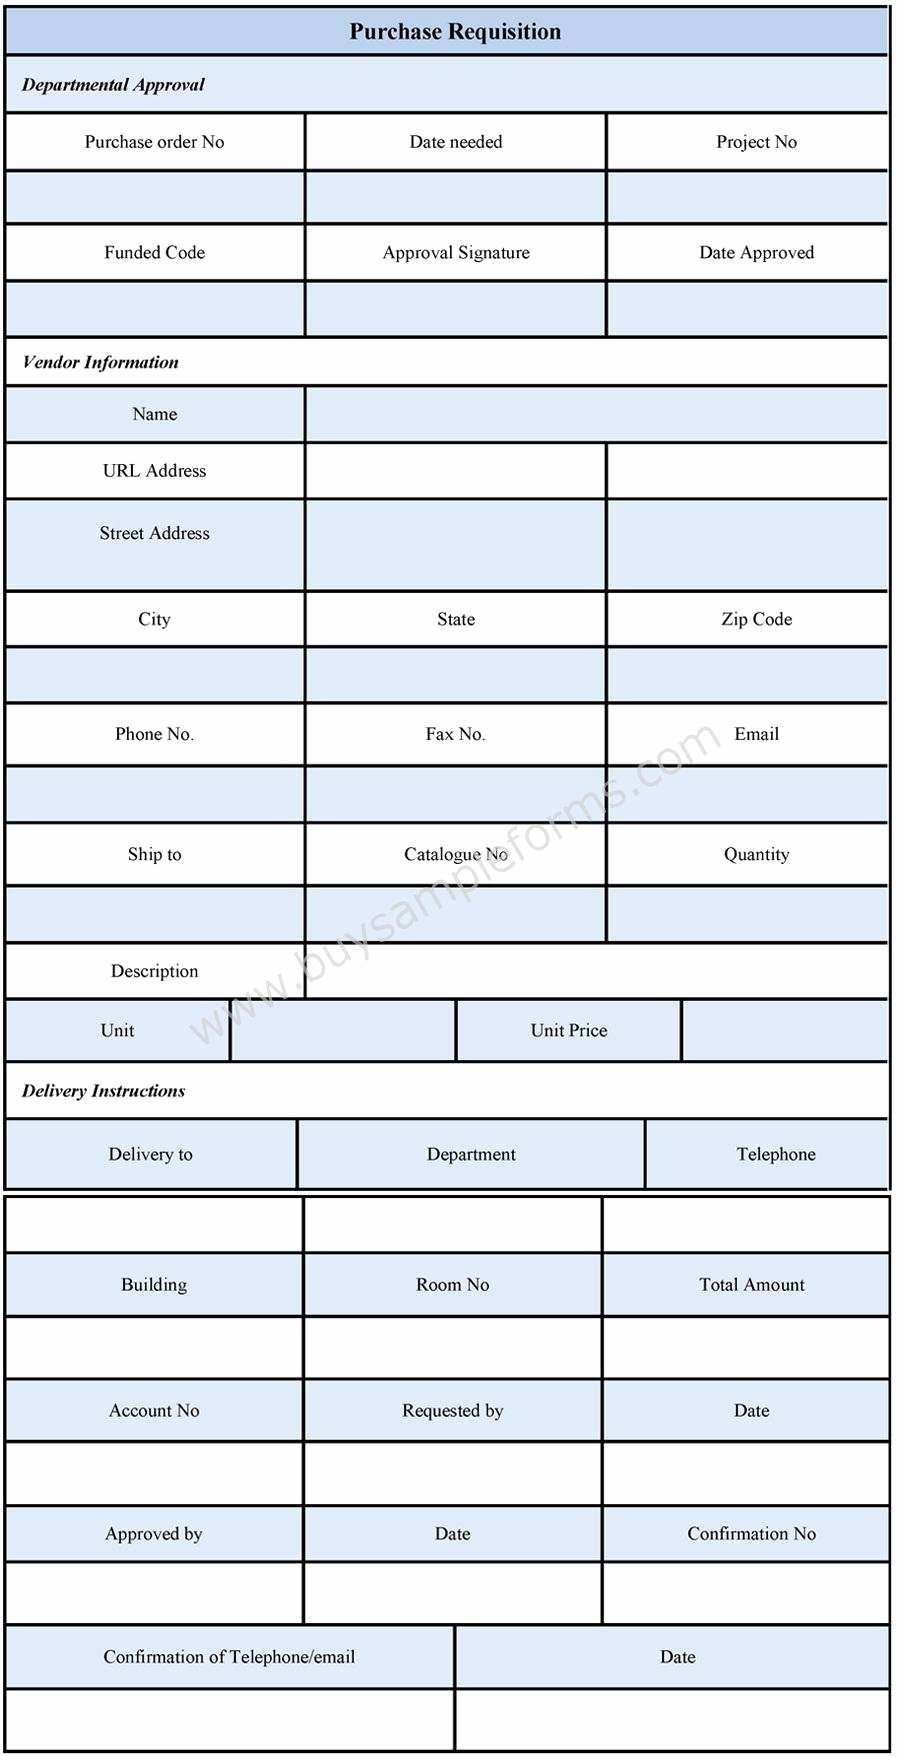 Purchase Requisition form Template Best Of Purchase Requisition form Sample forms